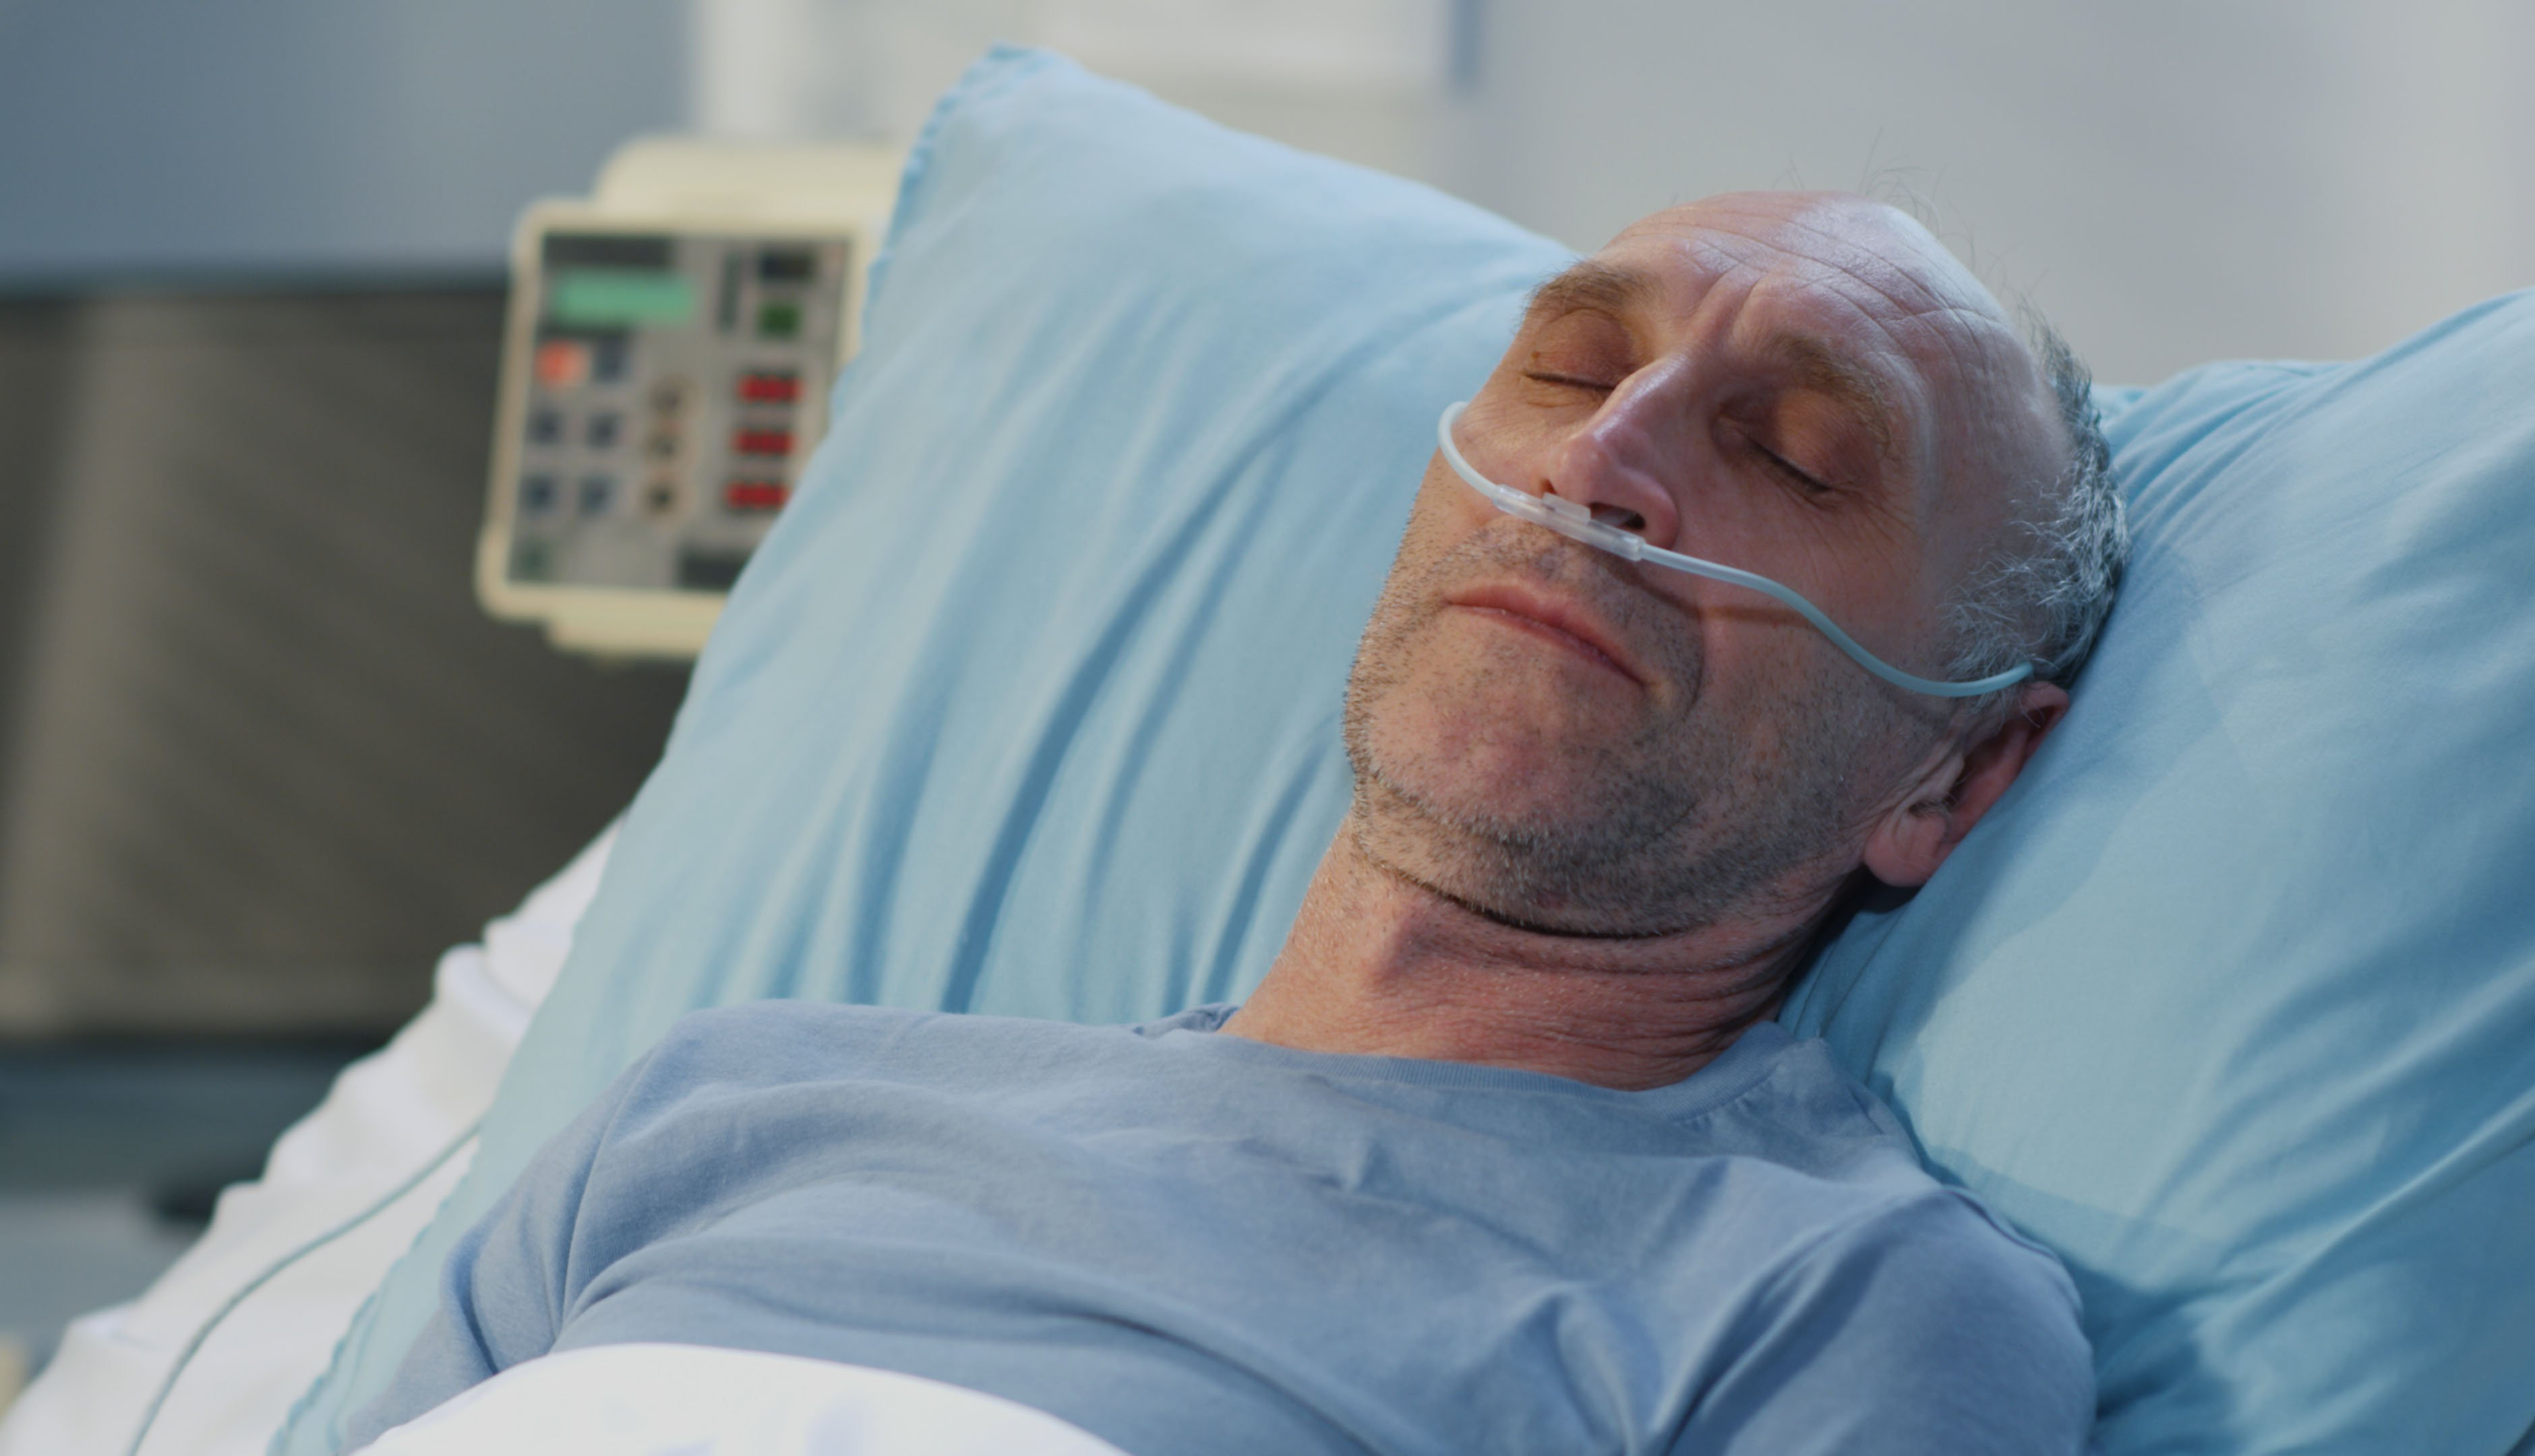 close up of male patient lying in hospital with a nasal canula in his nose to help with oxygen